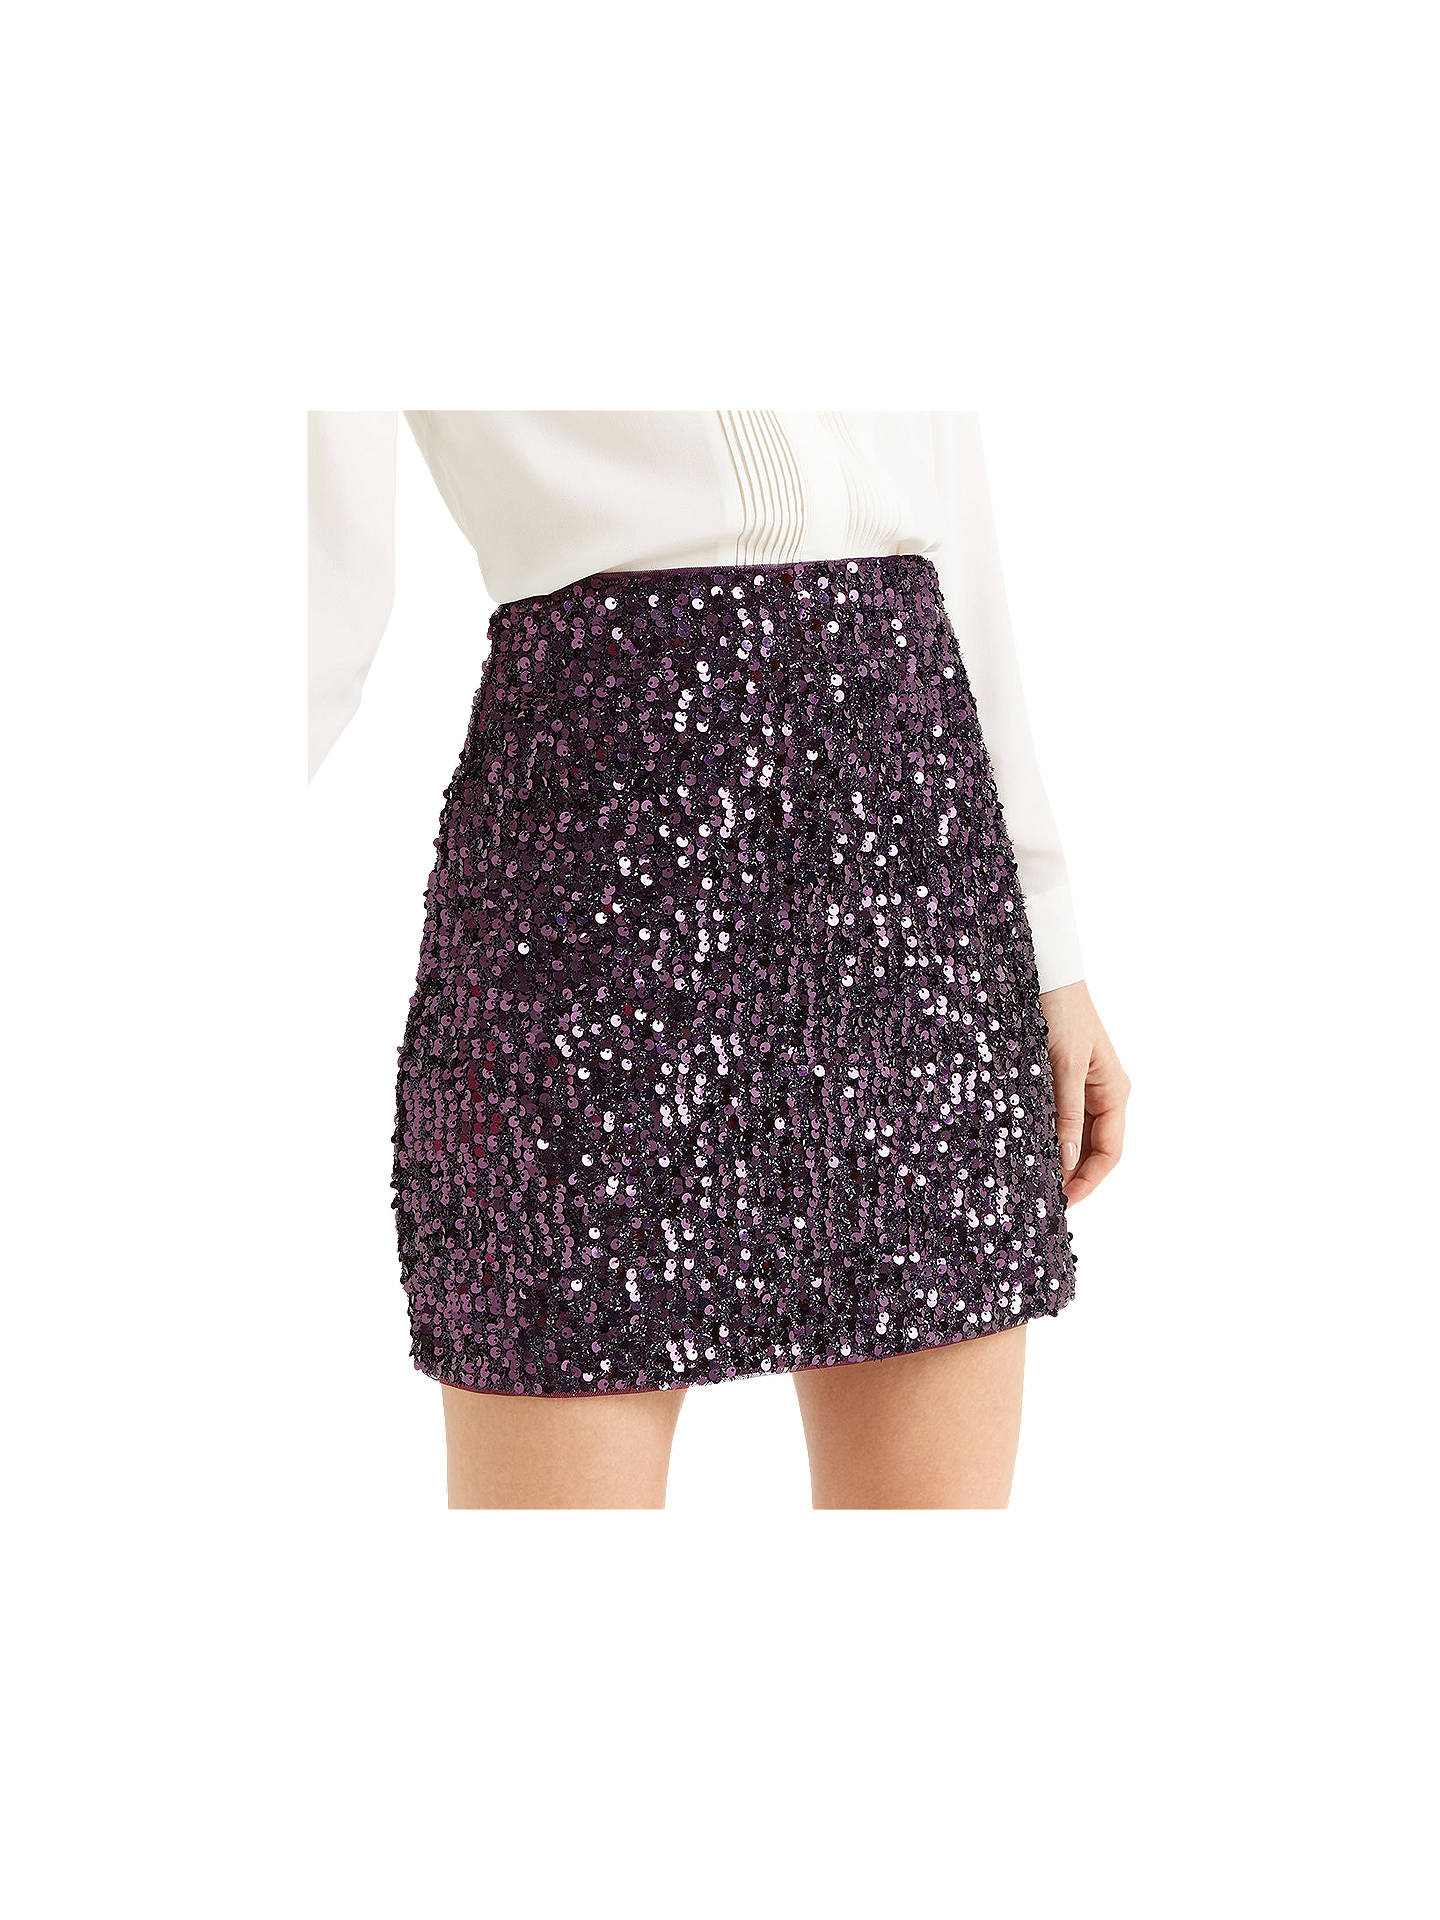 81388dbb6 ... Buy Oasis Sequin Tinsel Mini Skirt, Purple, XS Online at johnlewis.com